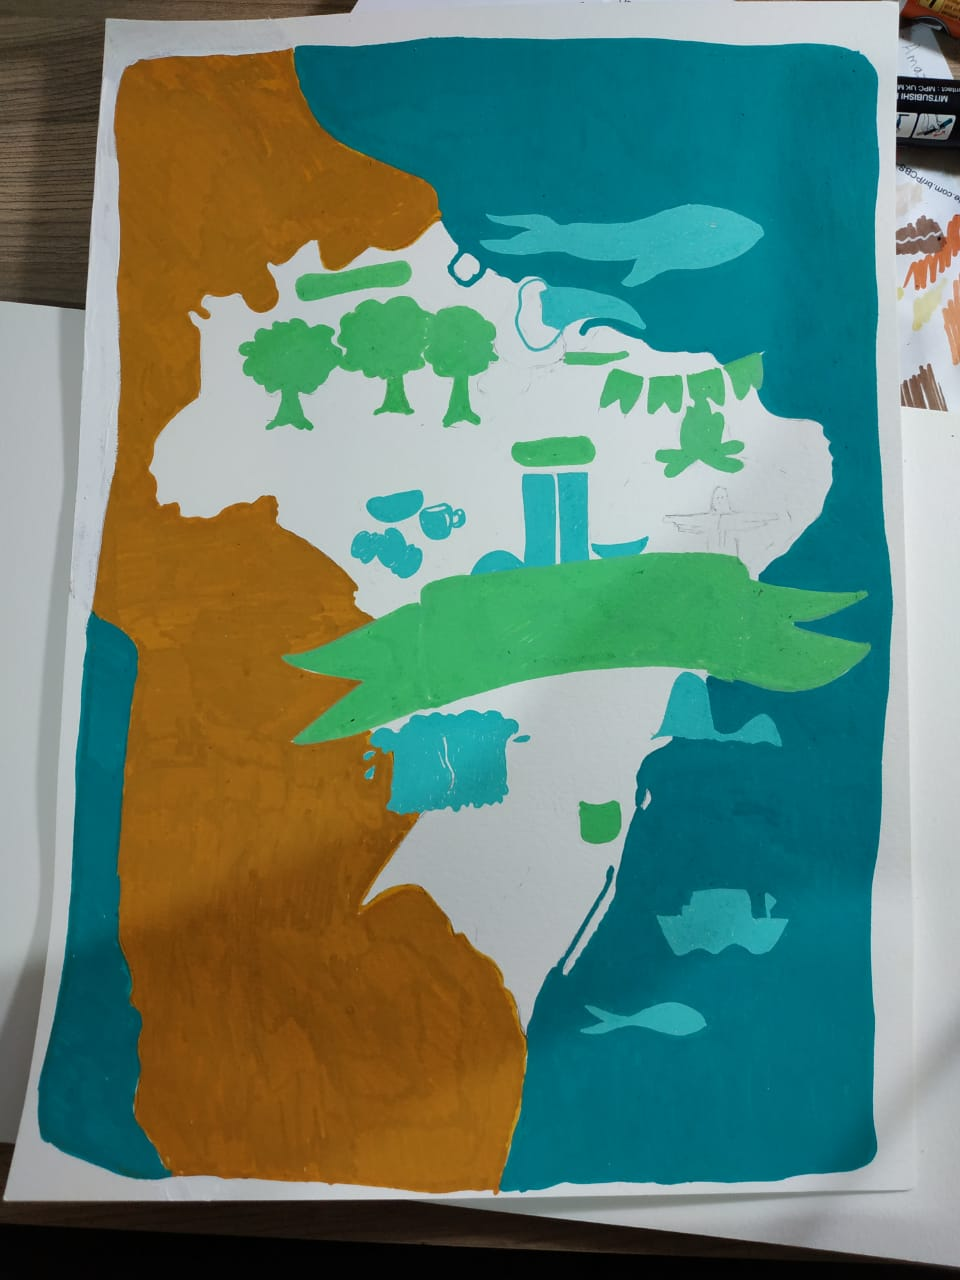 Brazil map - image 2 - student project